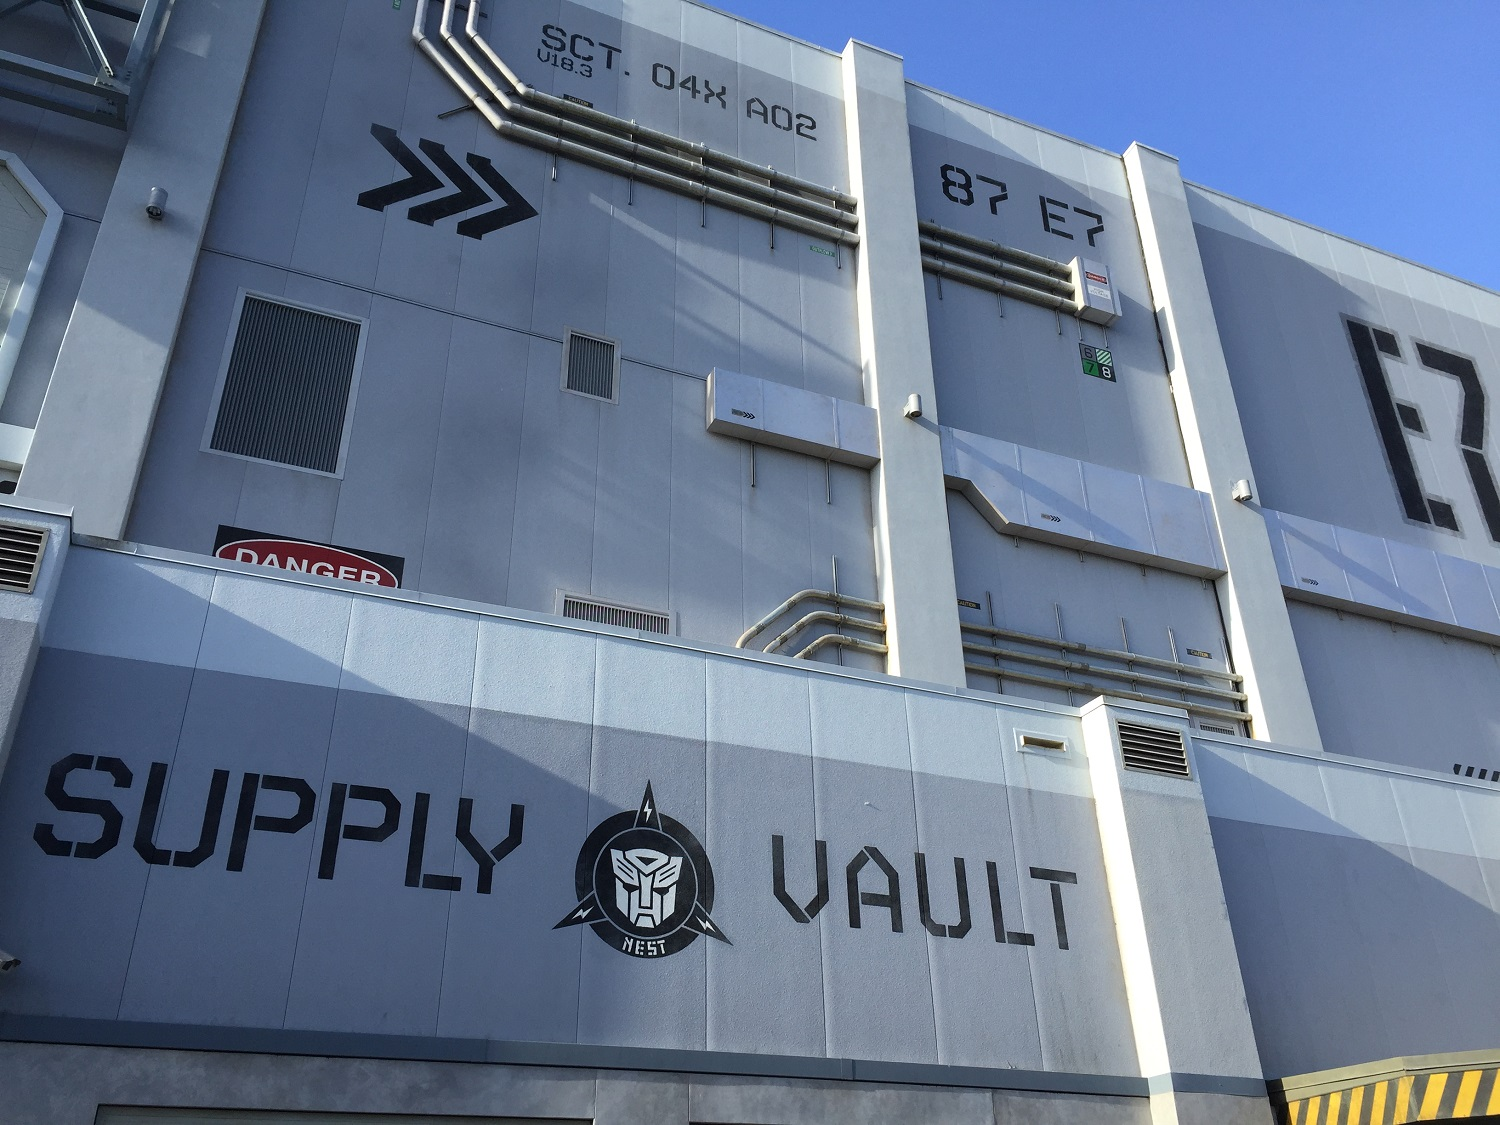 Guests can visit the Supply Vault gift shop after exiting the TRANSFORMERS ride.